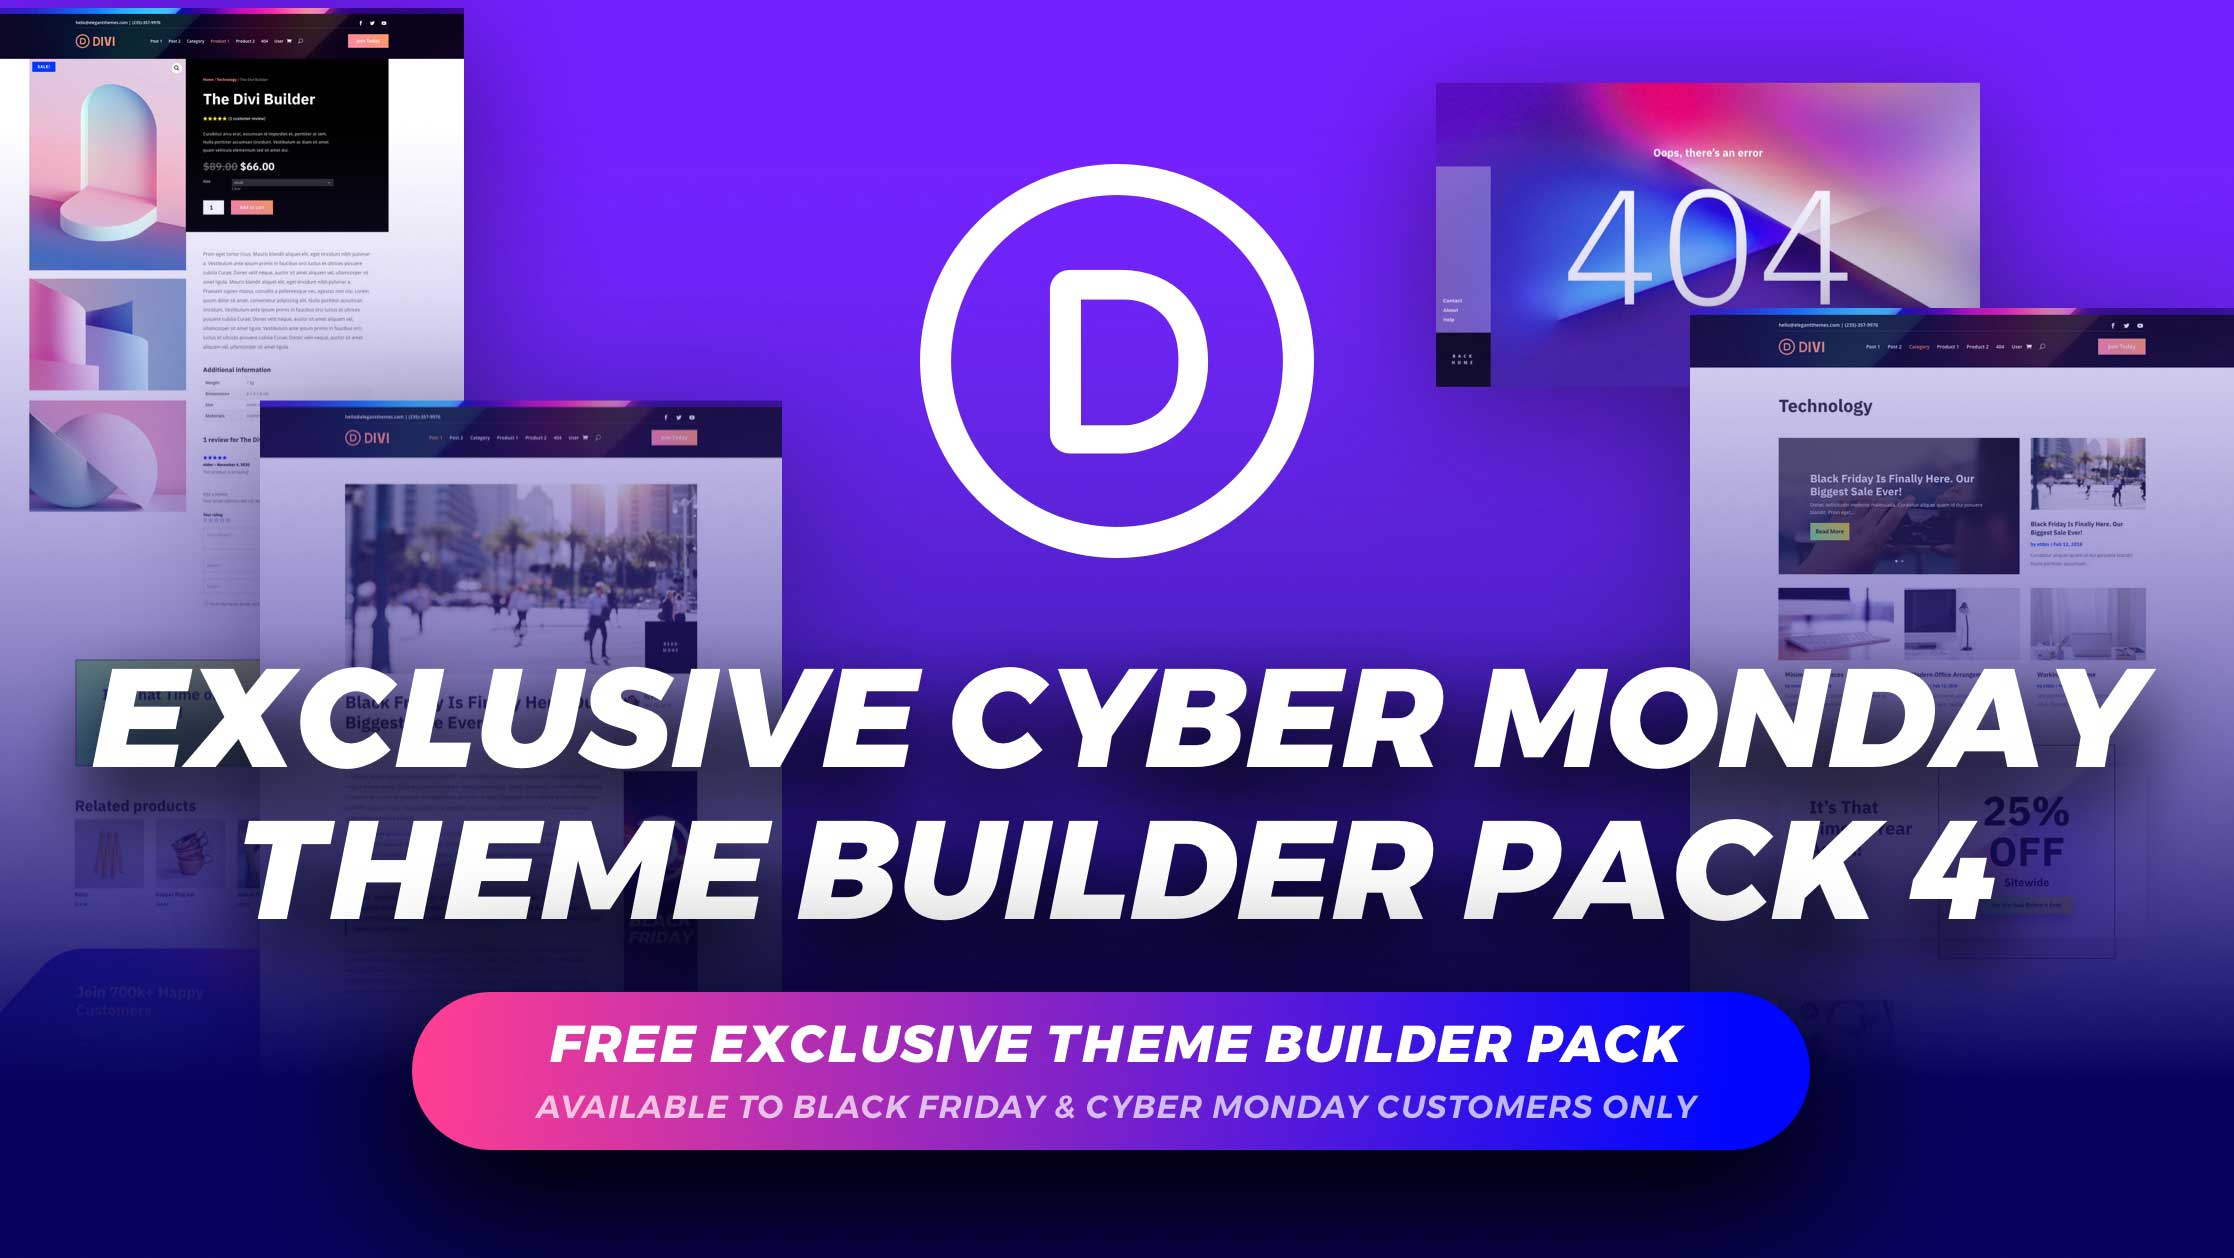 Get the Exclusive FREE Cyber Monday Theme Builder Pack #4